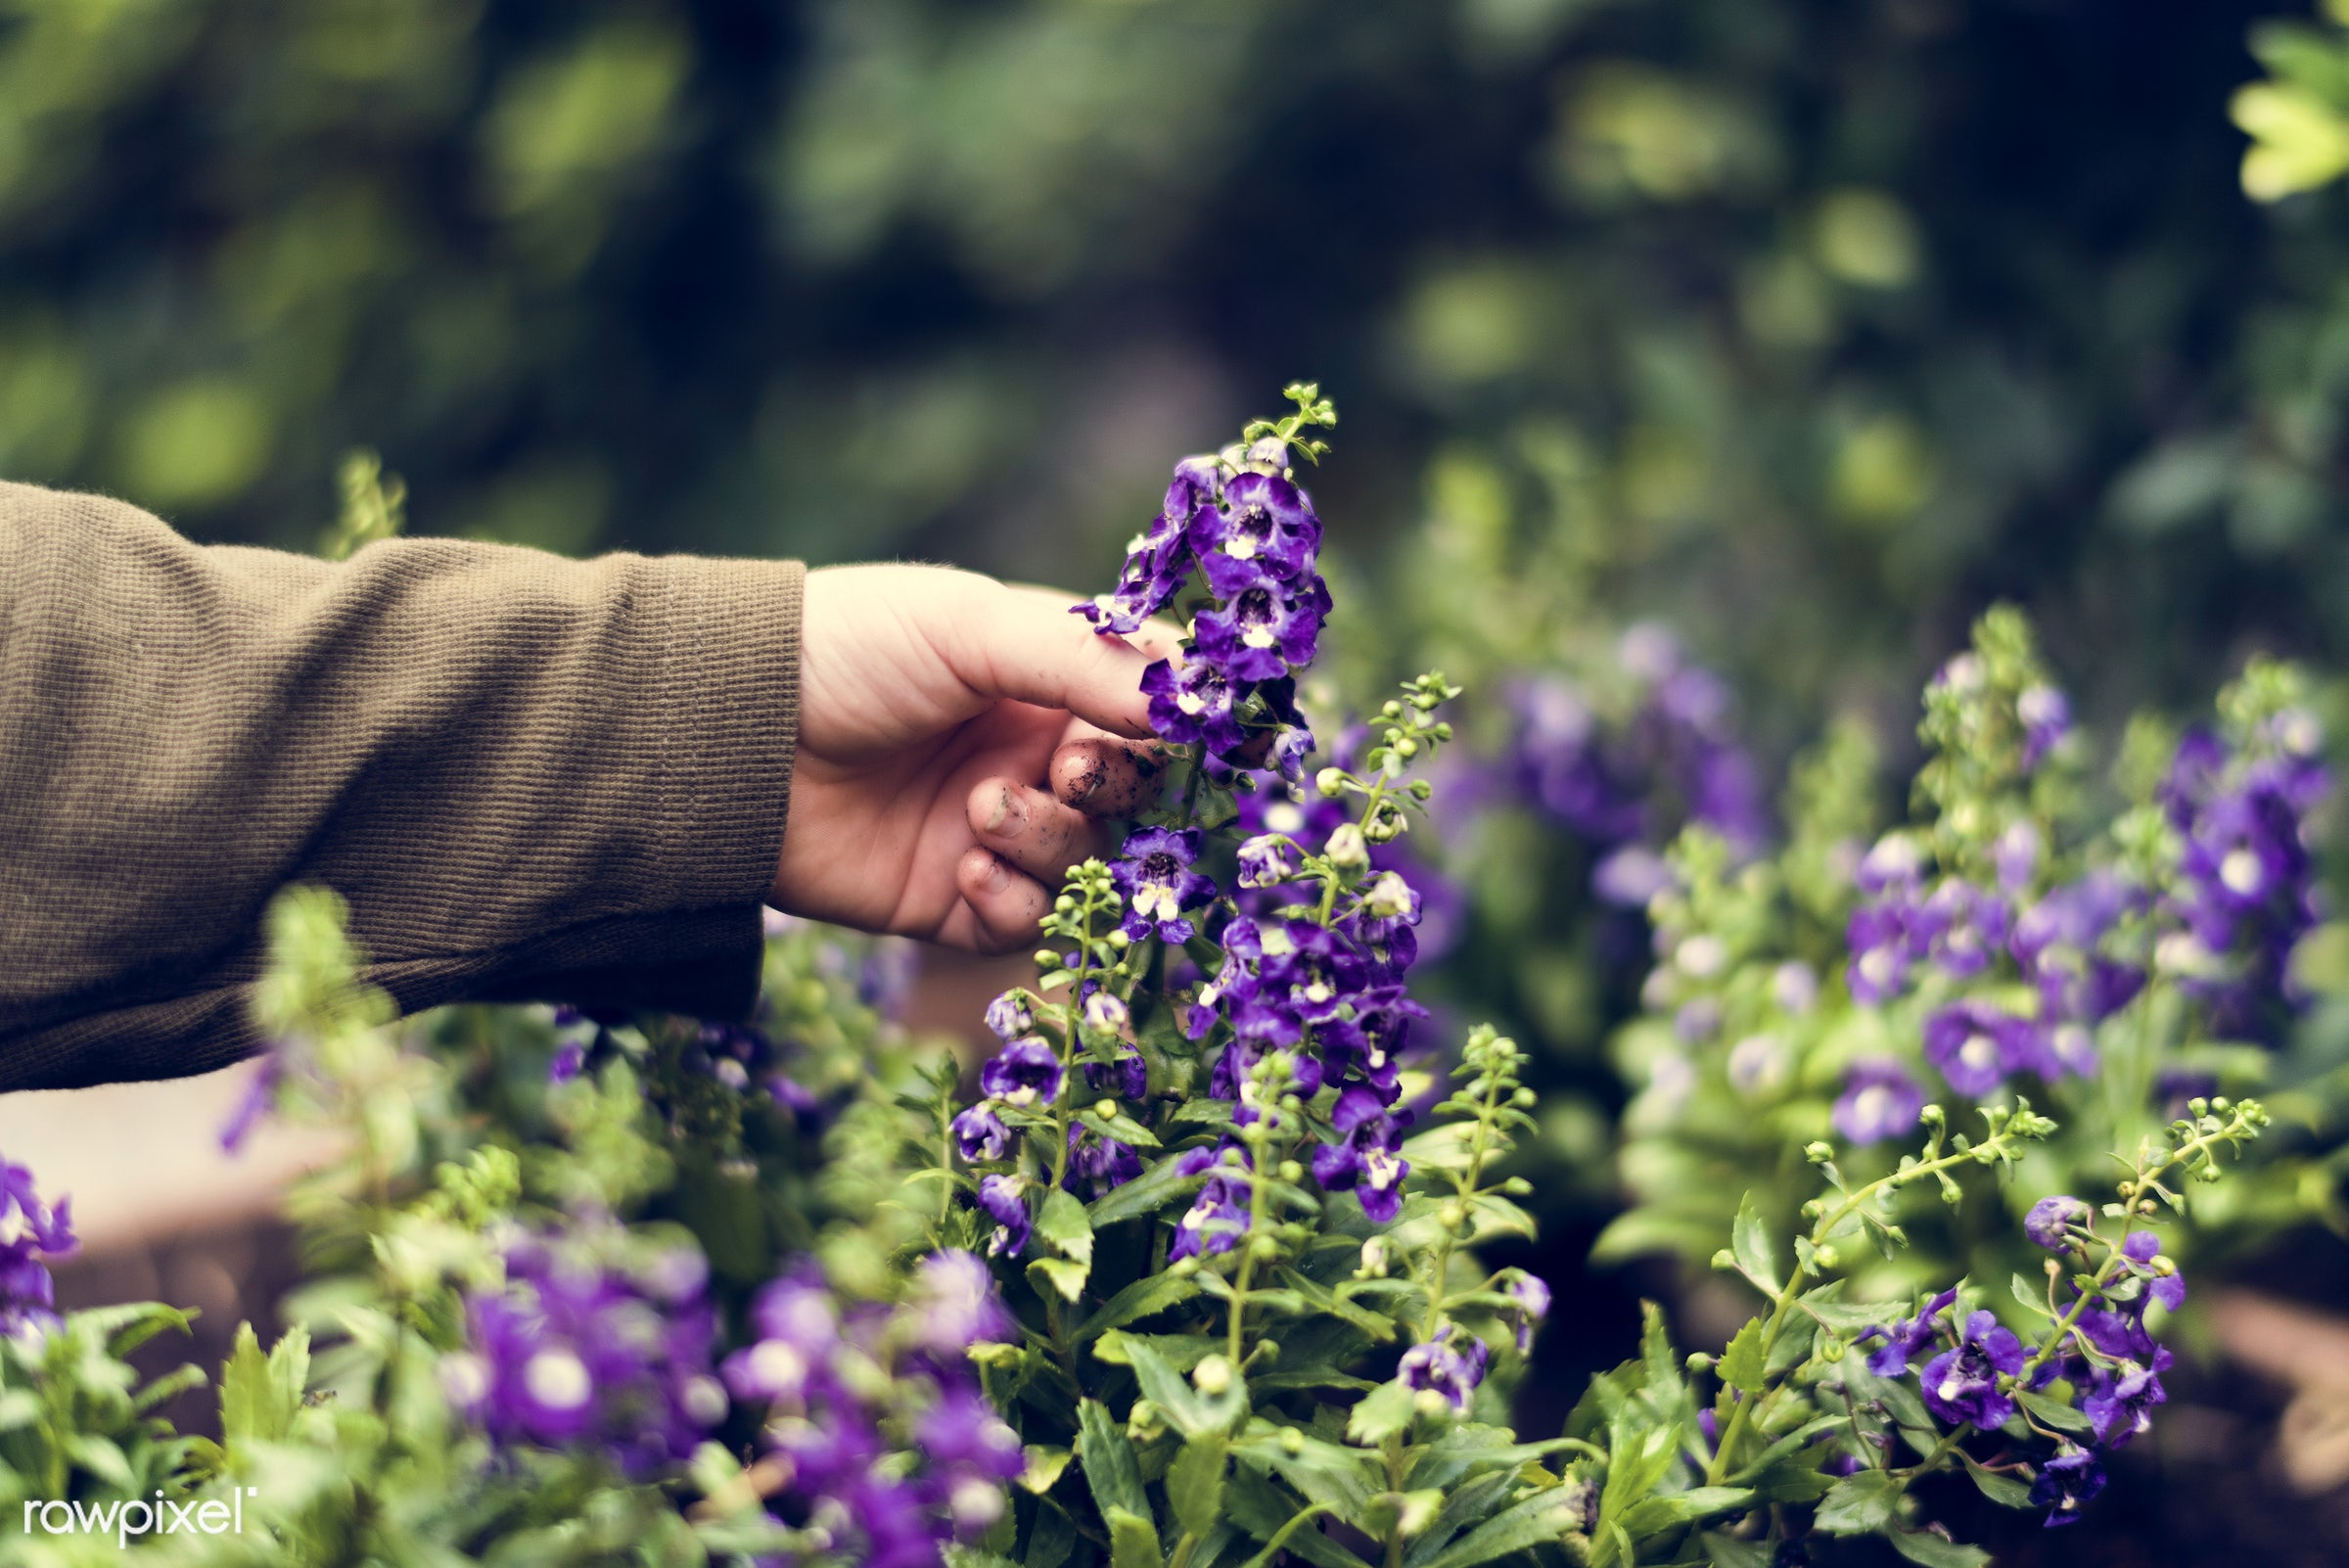 plant, relax, beauty, hand, farmer, nature, fresh, flower, activity, flora, hobby, agriculture, planting, leisure,...